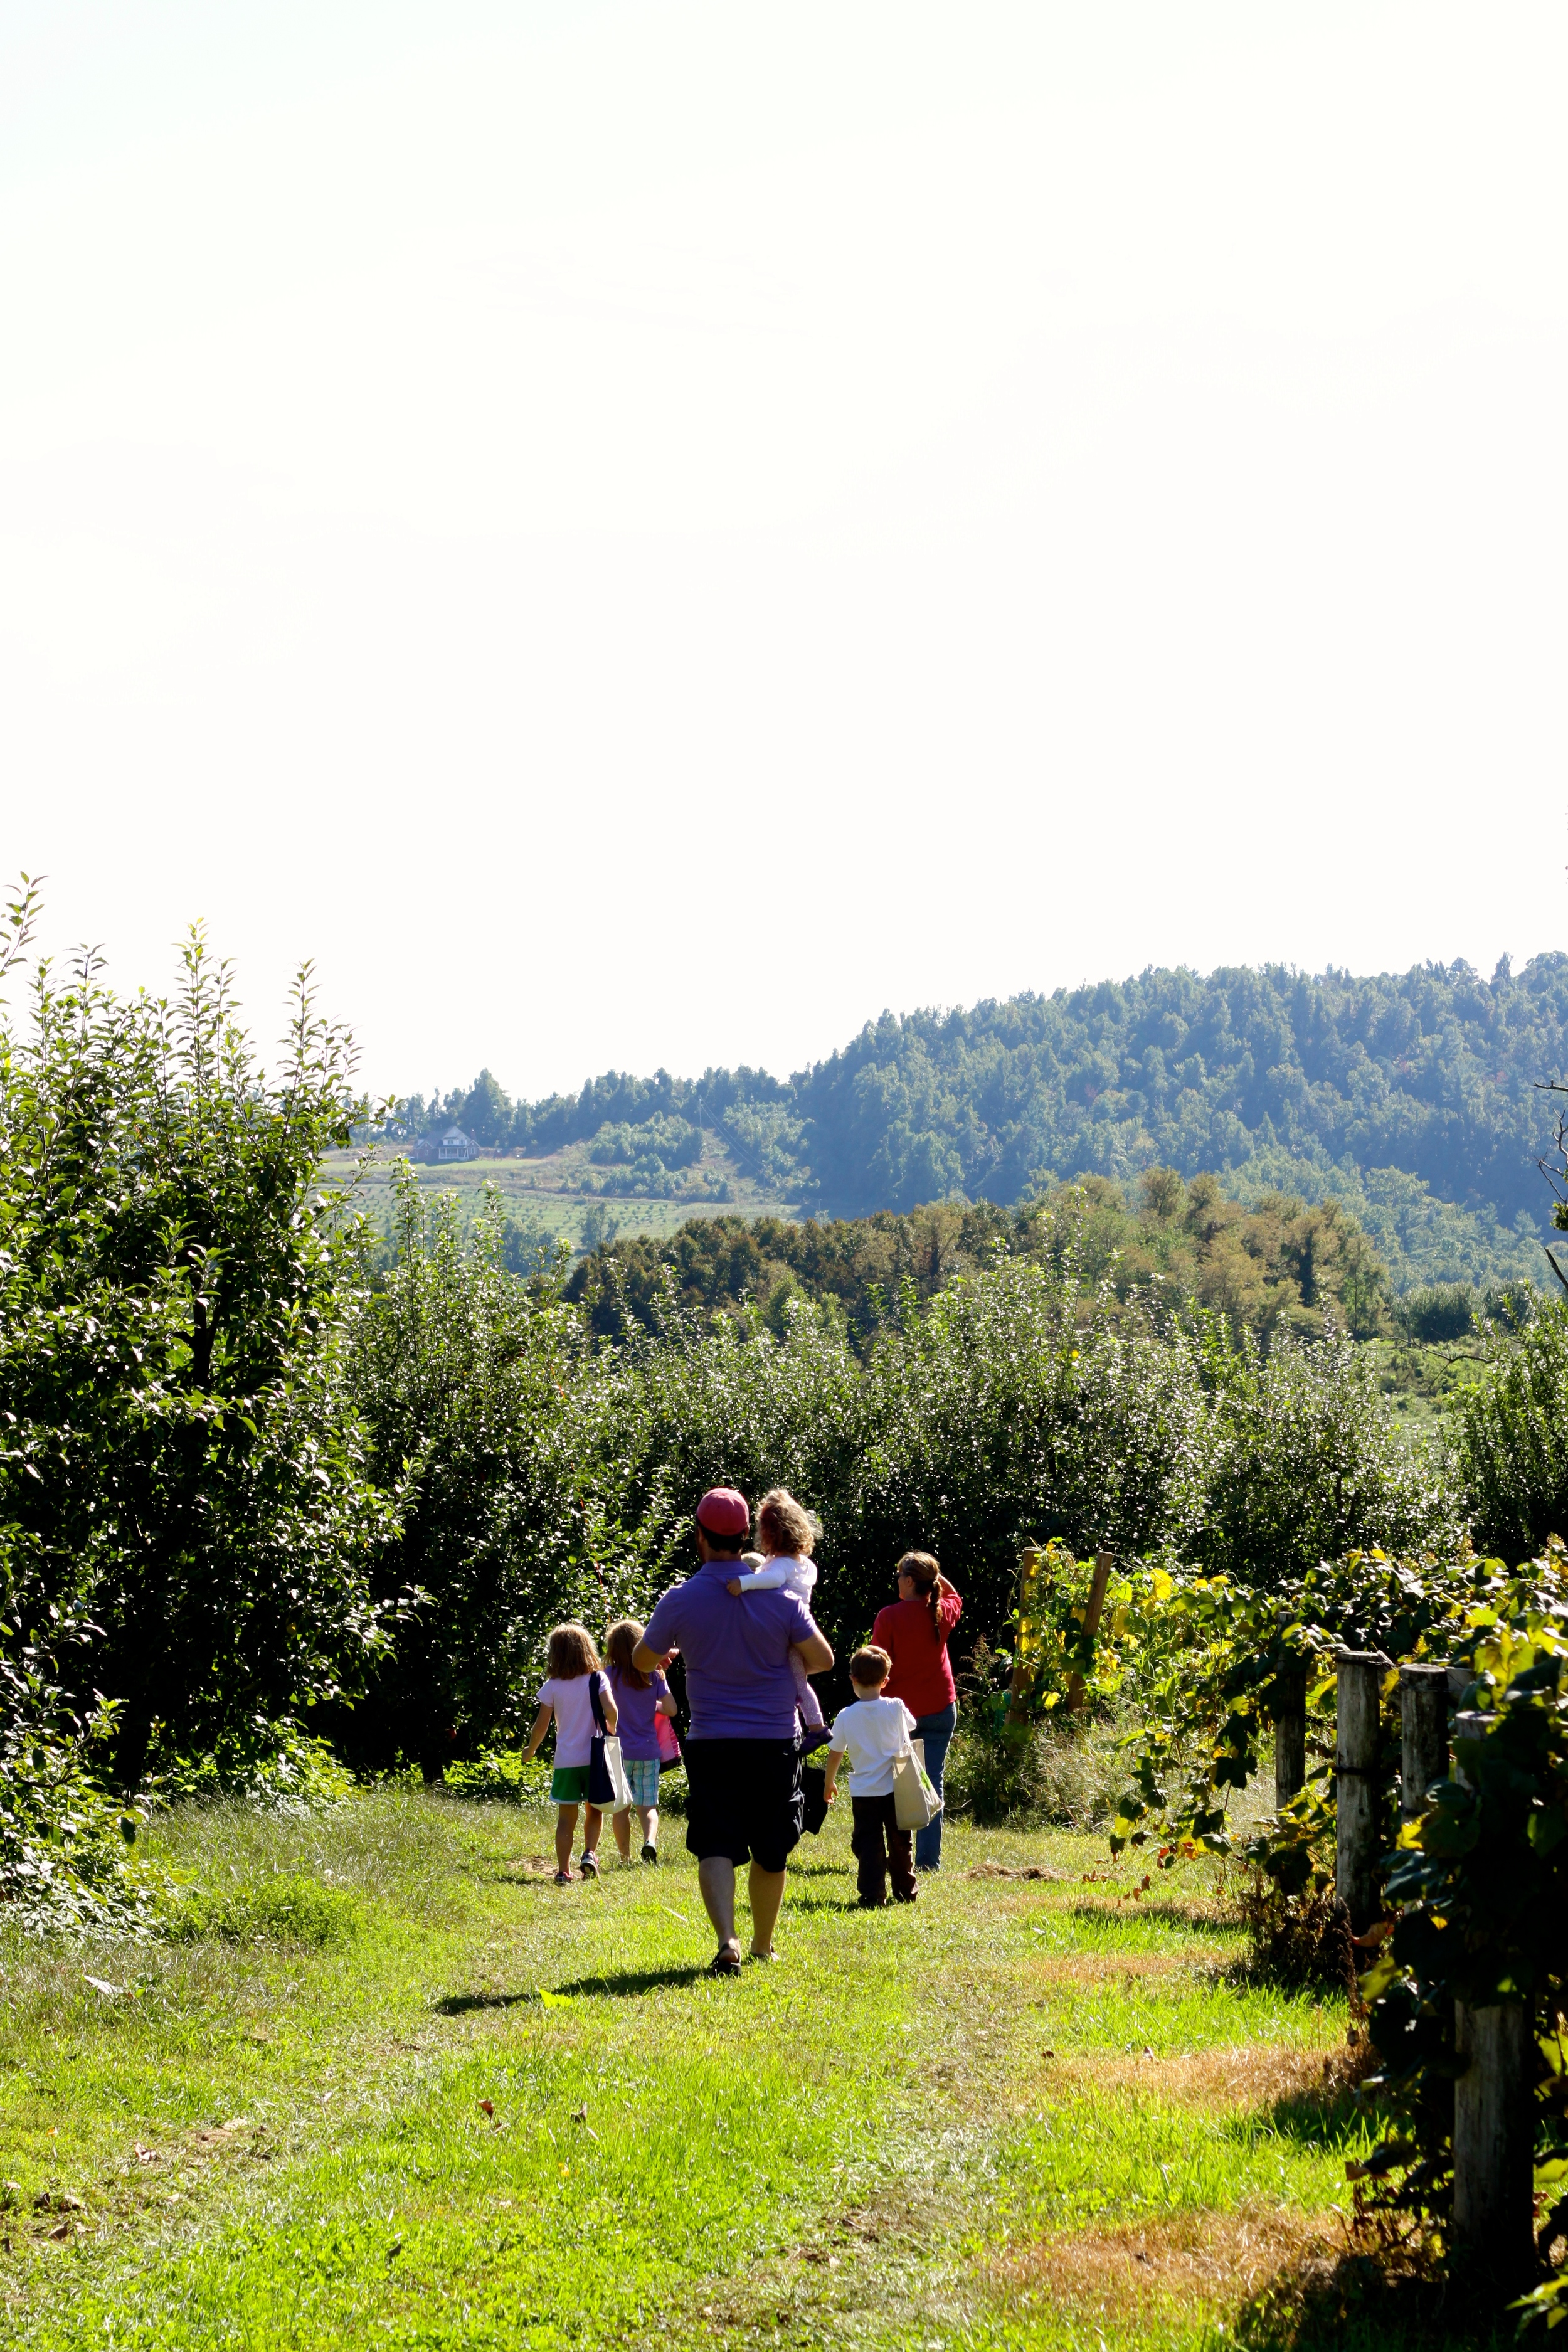 Private apple picking party. You can tell that this was early in the venture because the kids are still carrying the apple bags.